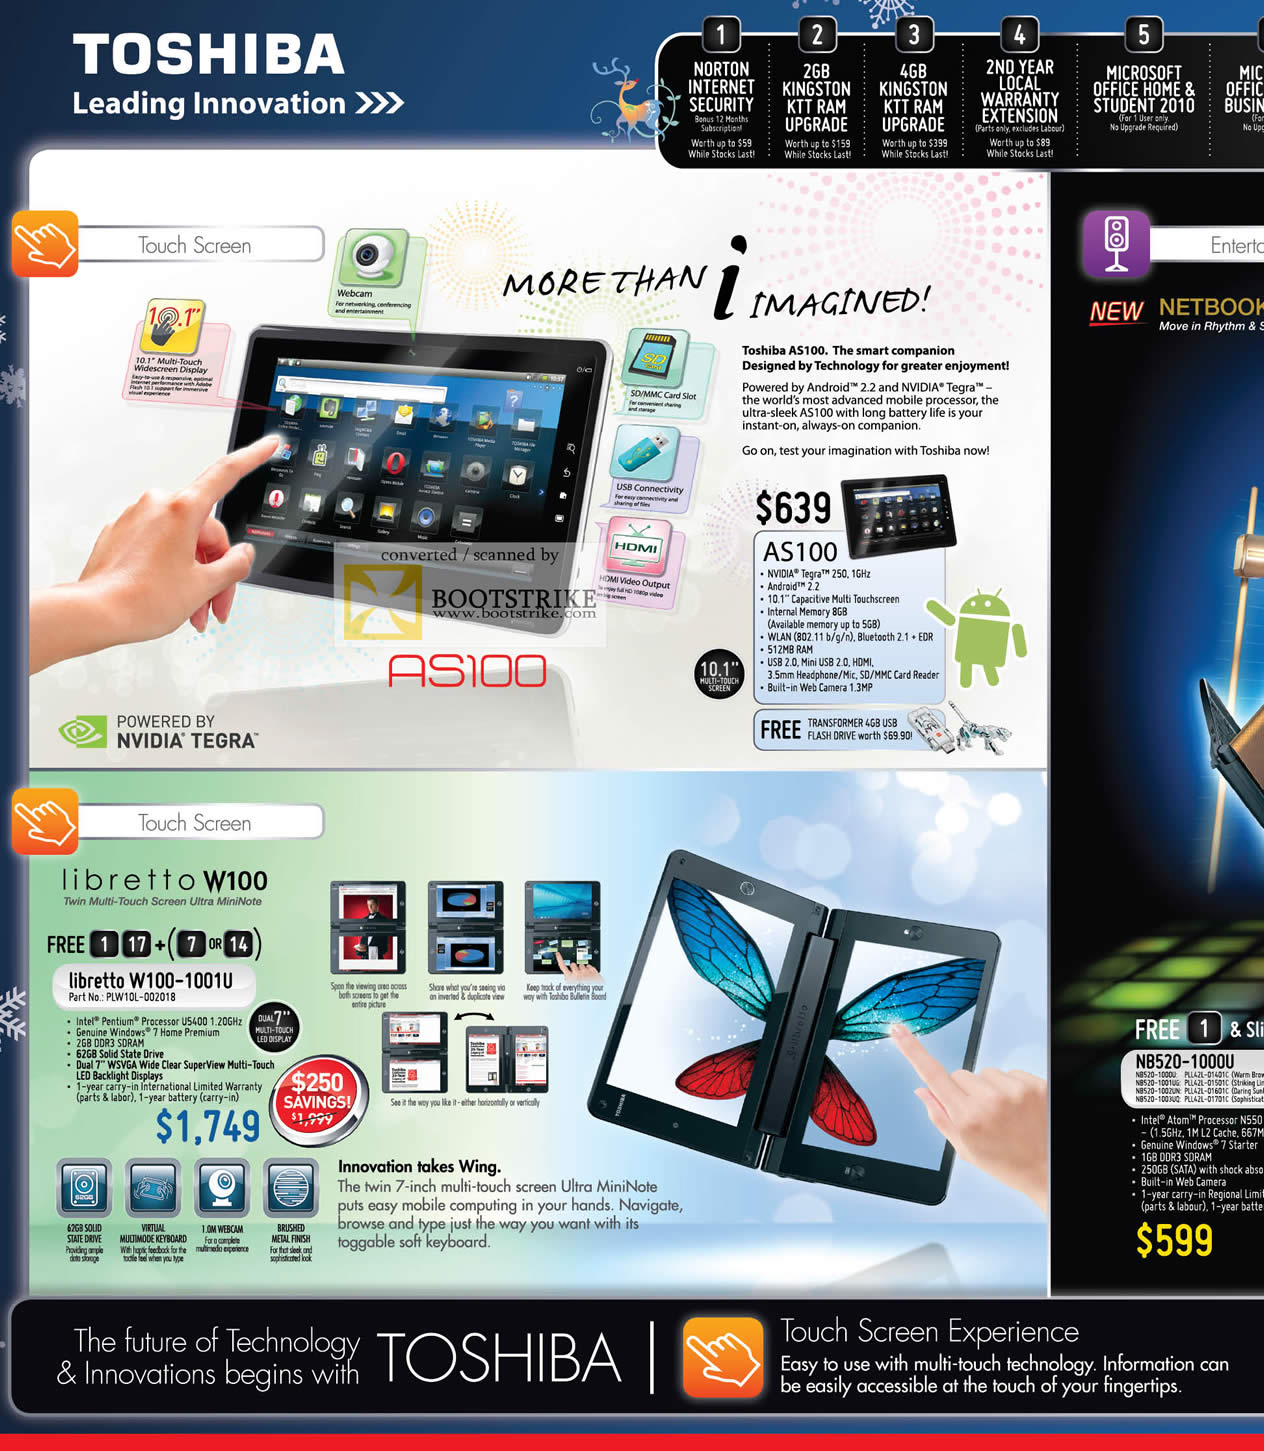 Sitex 2010 price list image brochure of Toshiba Tablets Nvidia Tegra AS100 Android Libretto W100 1001U